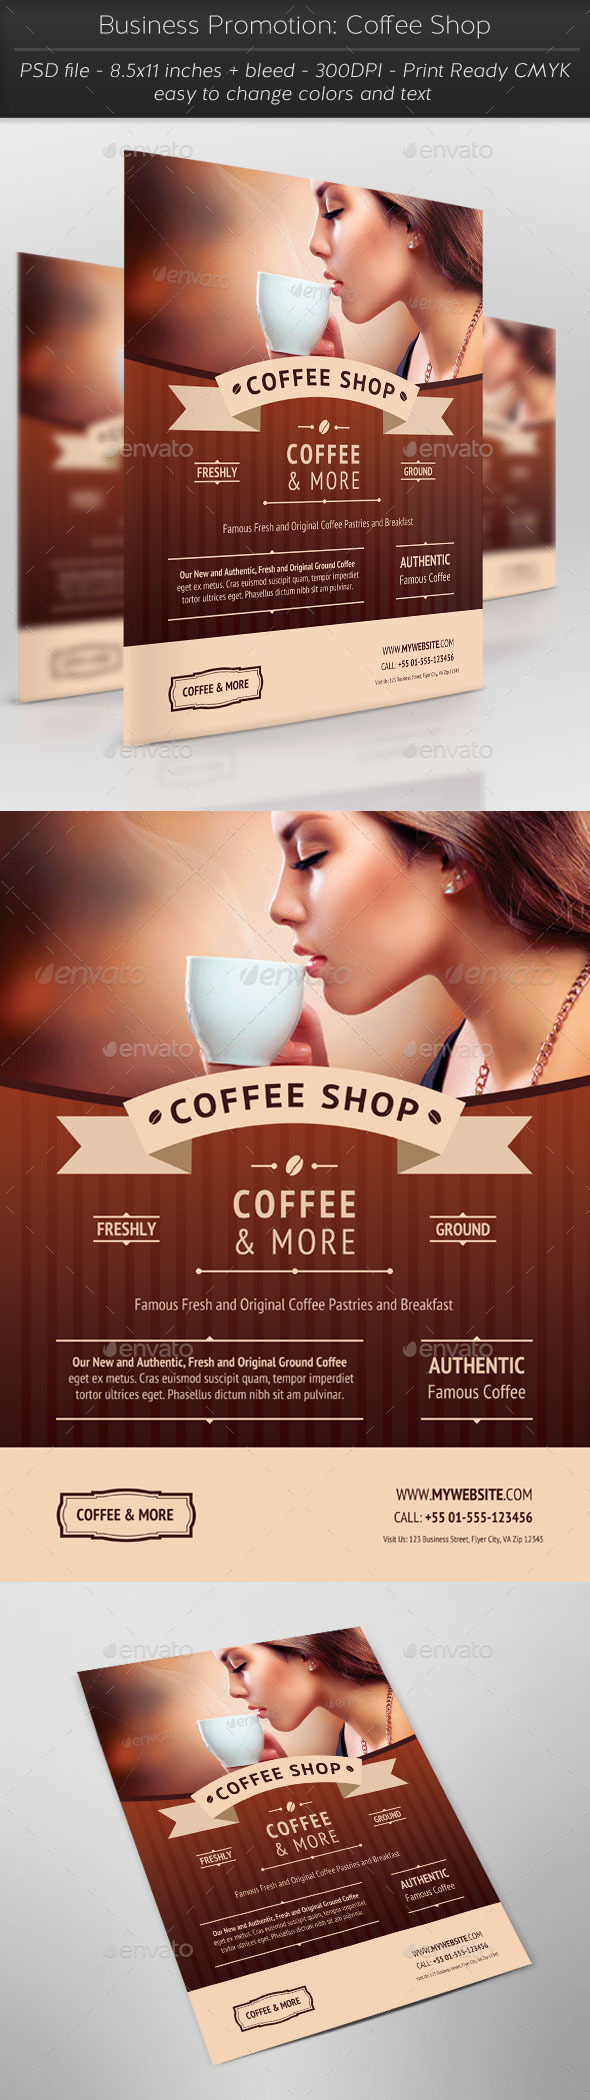 GraphicRiver Business Promotion Coffee Shop 11383464